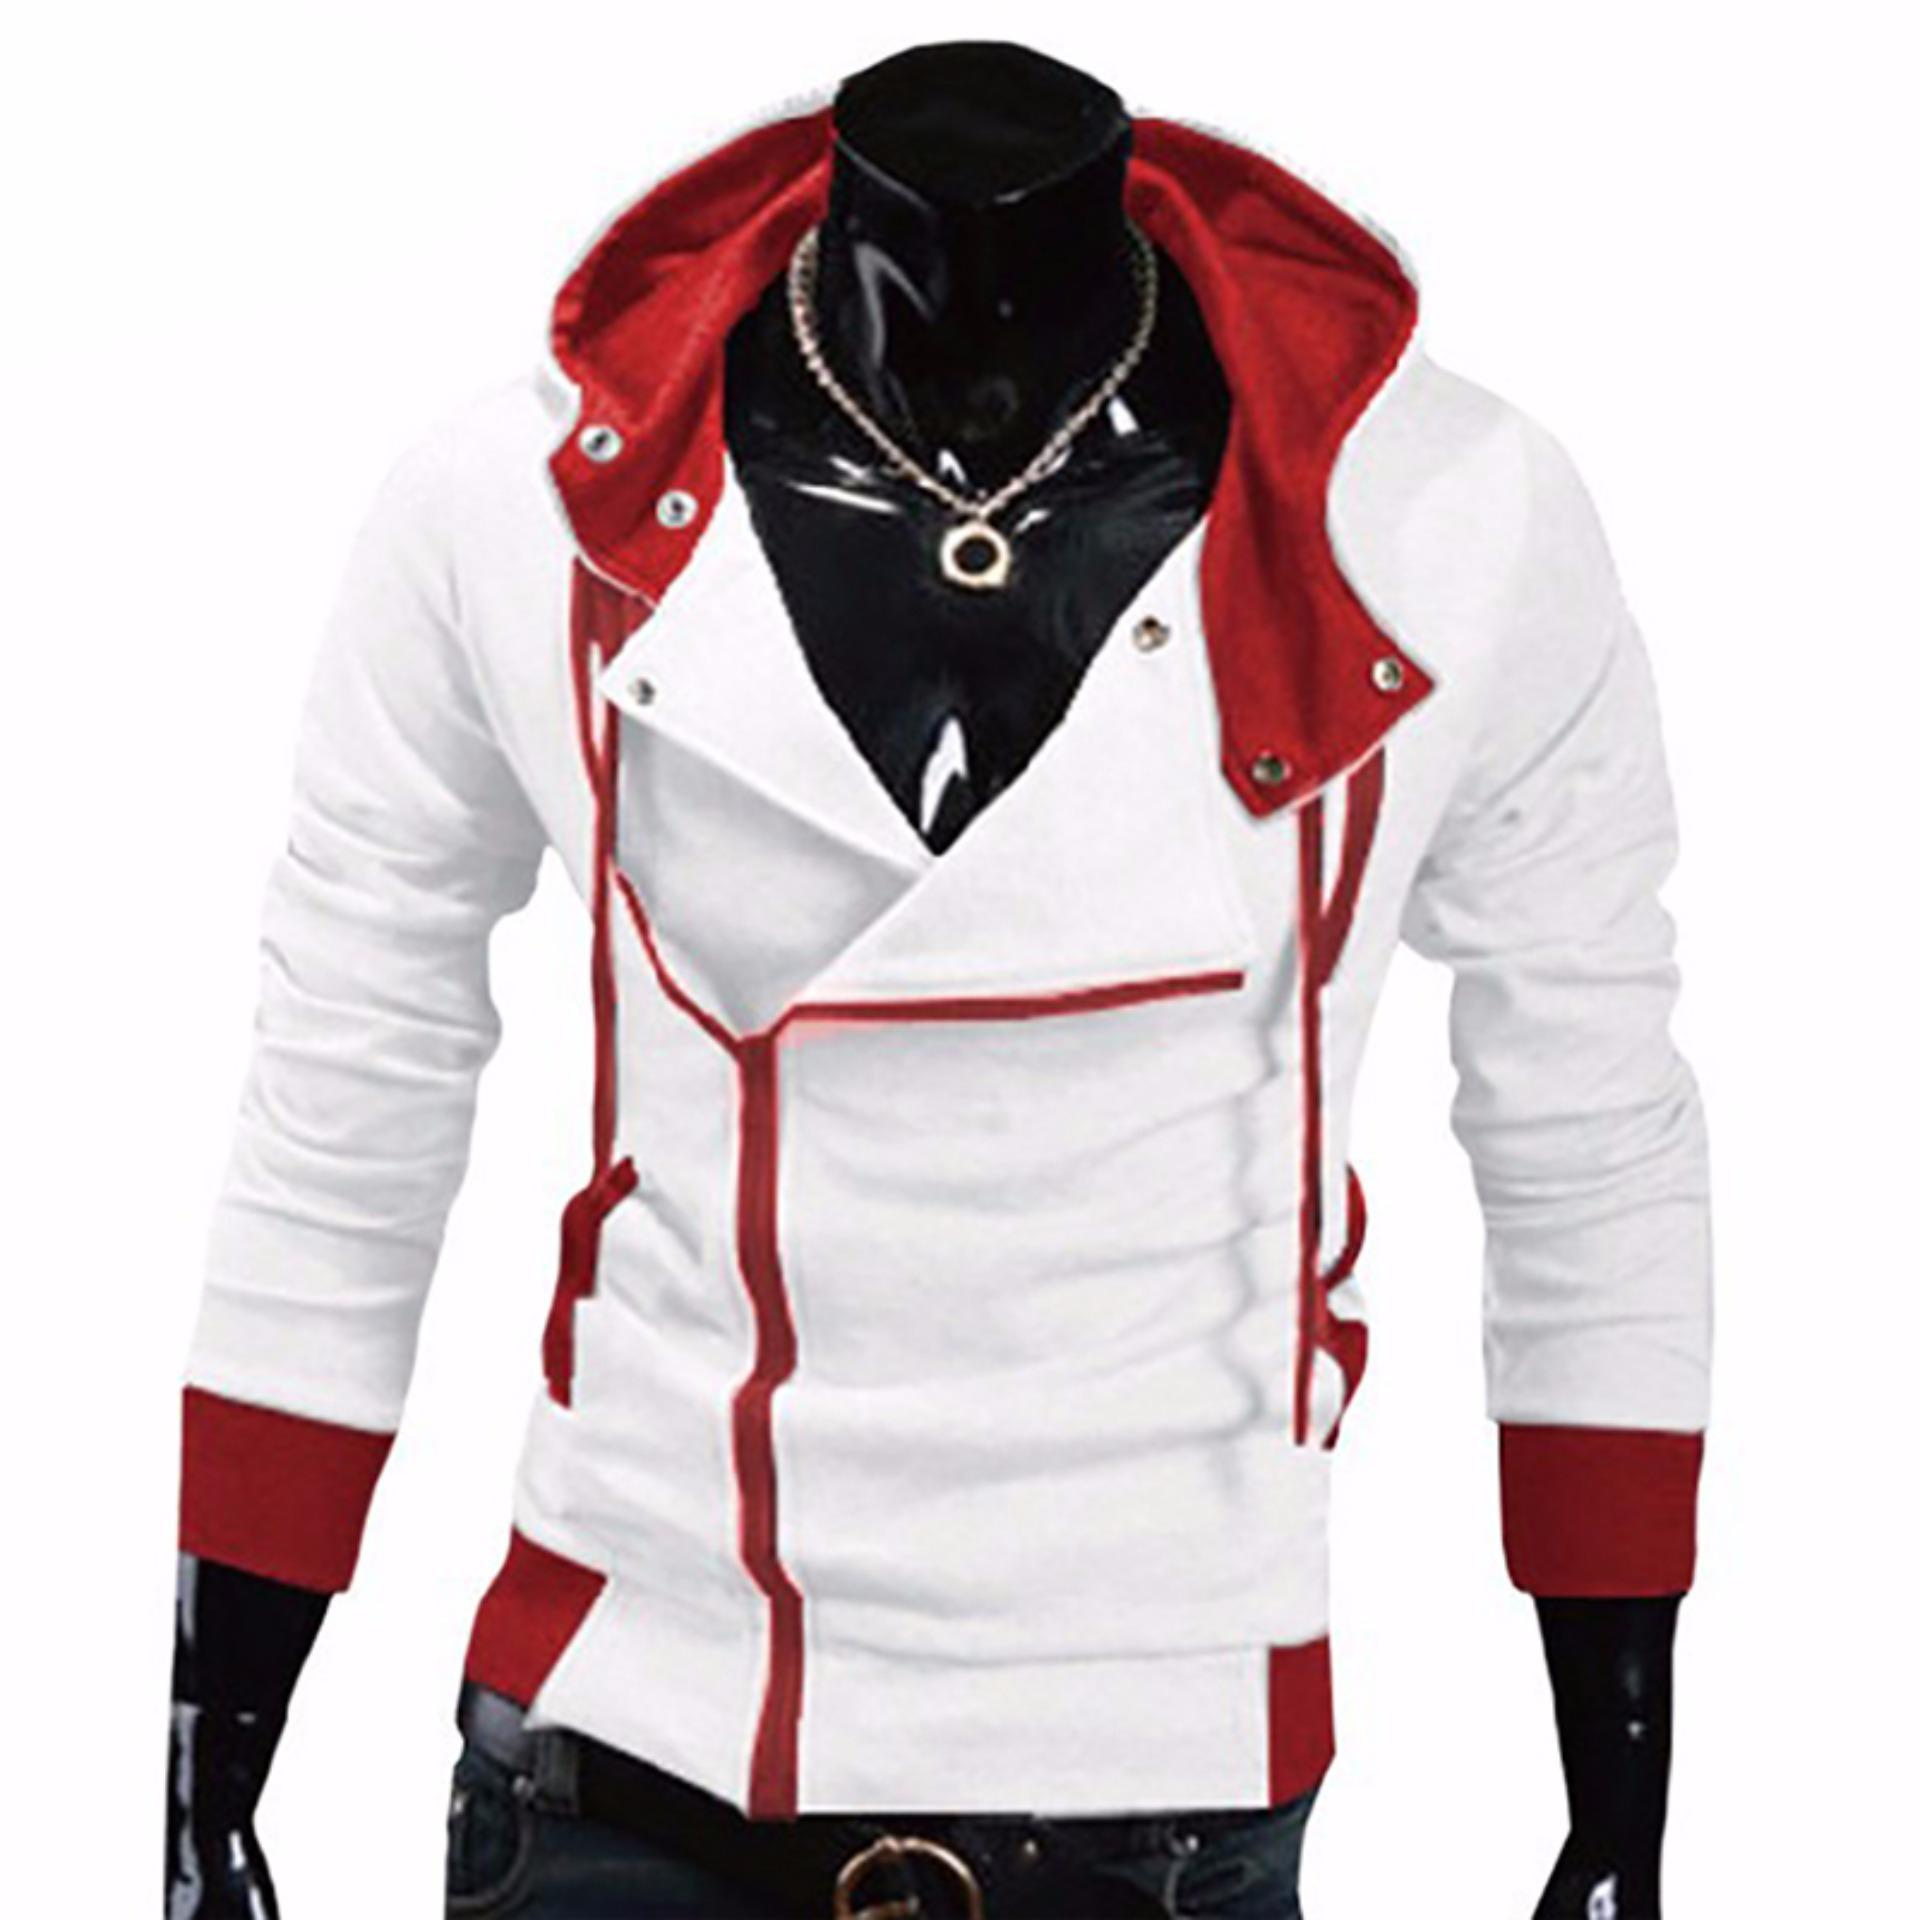 Review Hequ Aliexpress Explosion Of Assassin S Creed Sweater Oblique Zipper Hooded Jacket Men S W20 White Intl Terbaru